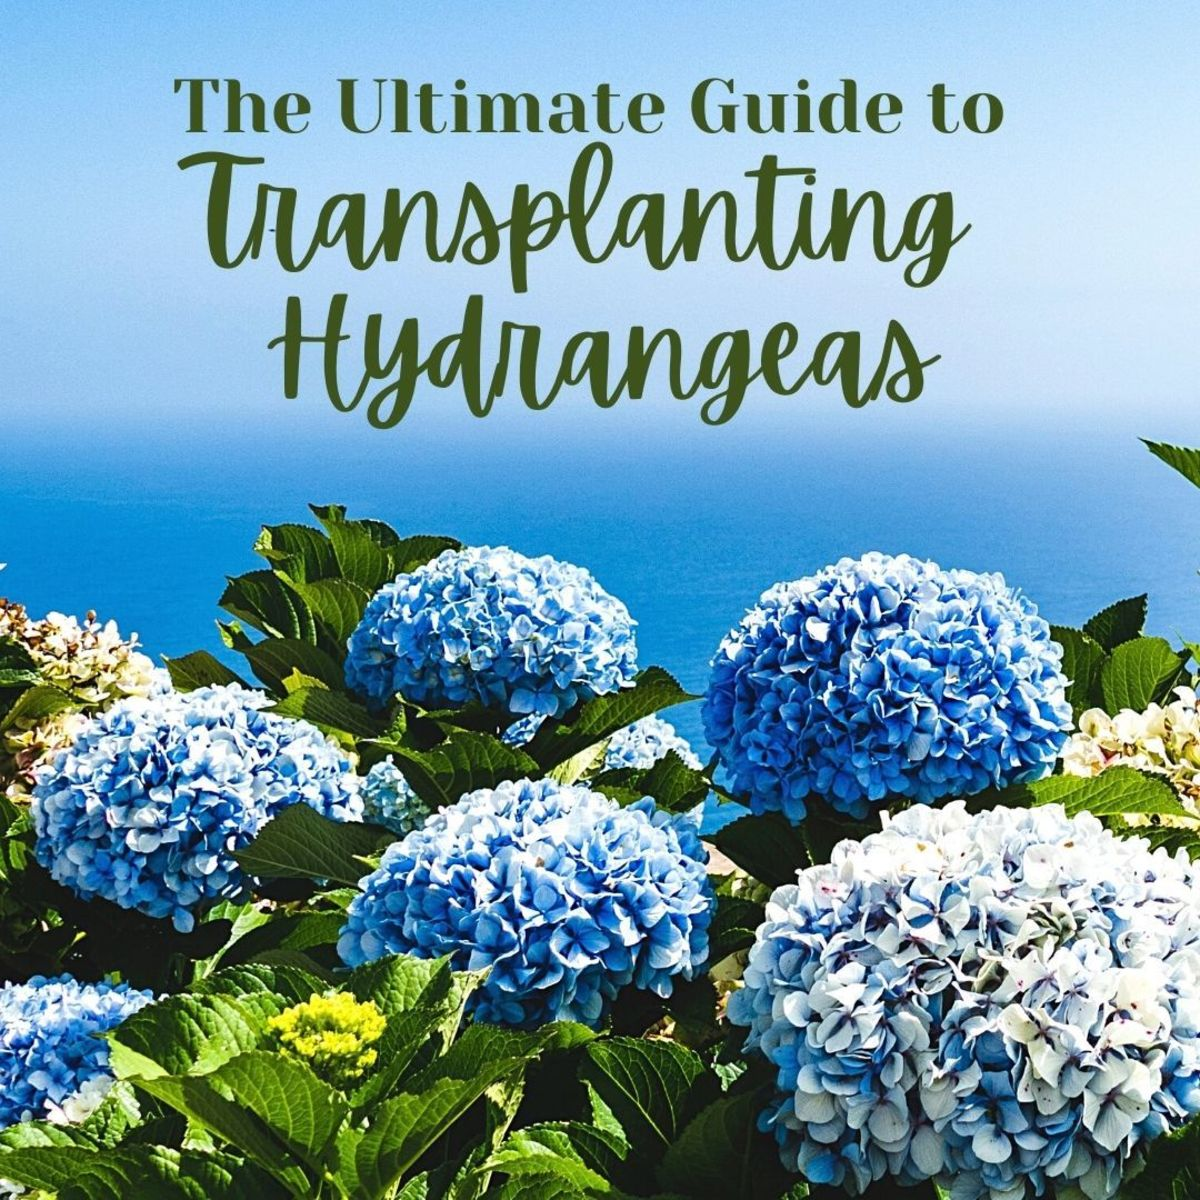 How and why you should transplant hydrangeas